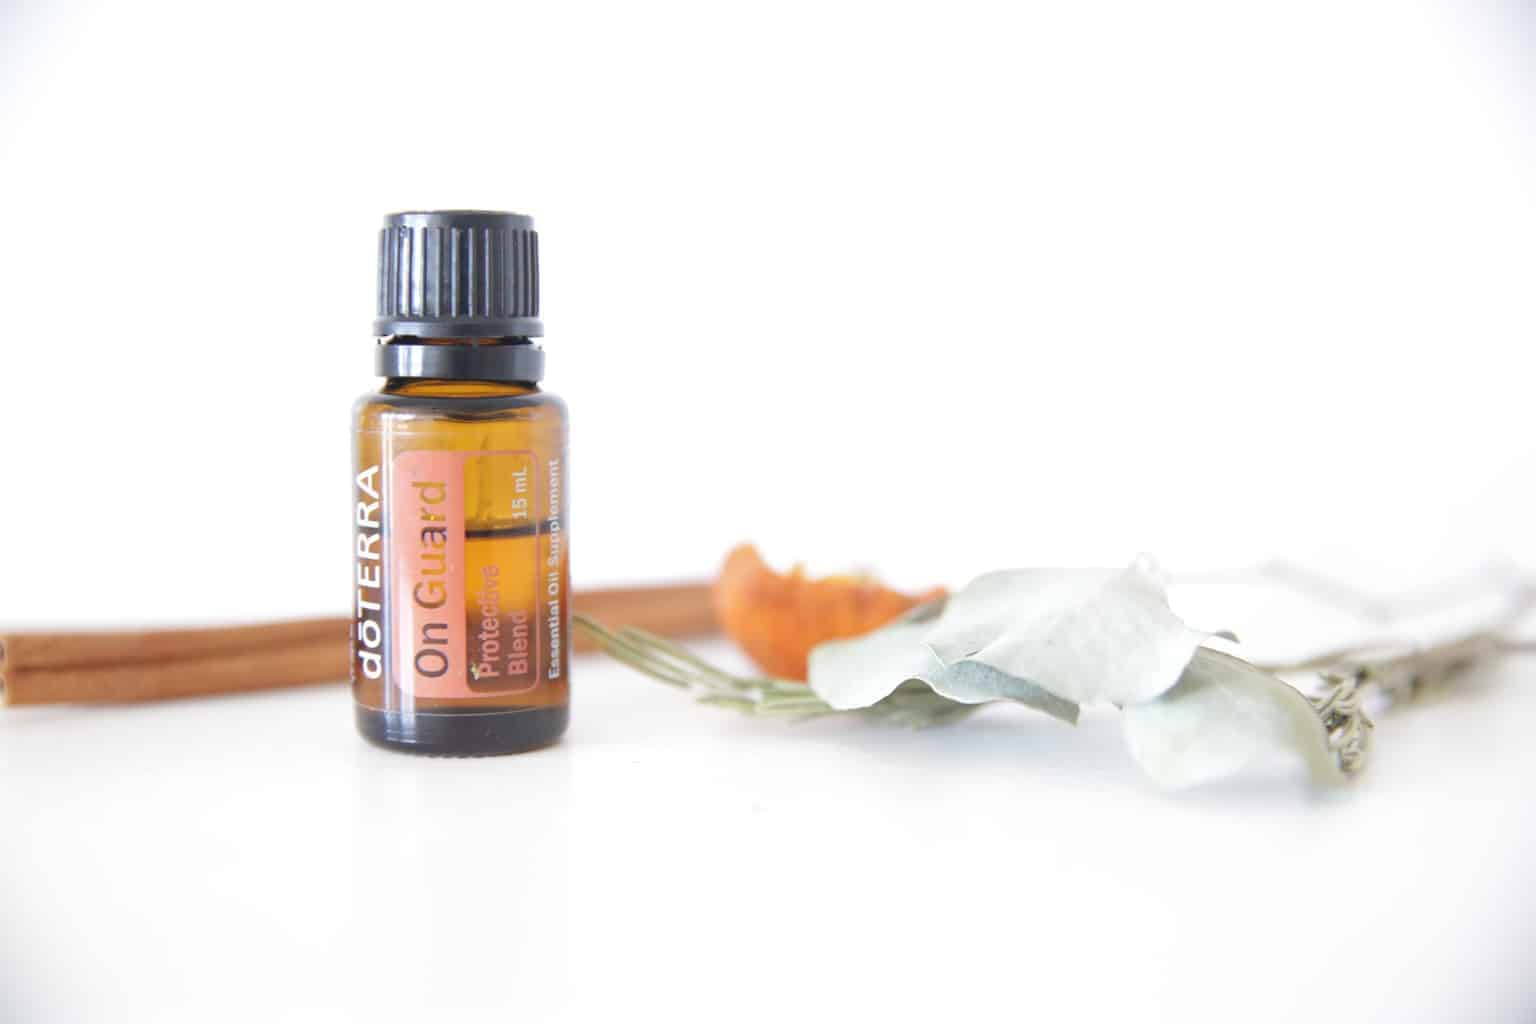 doTERRA's on guard essential oil can be used to give a natural immune boost when used topically, internally, and aromatically.